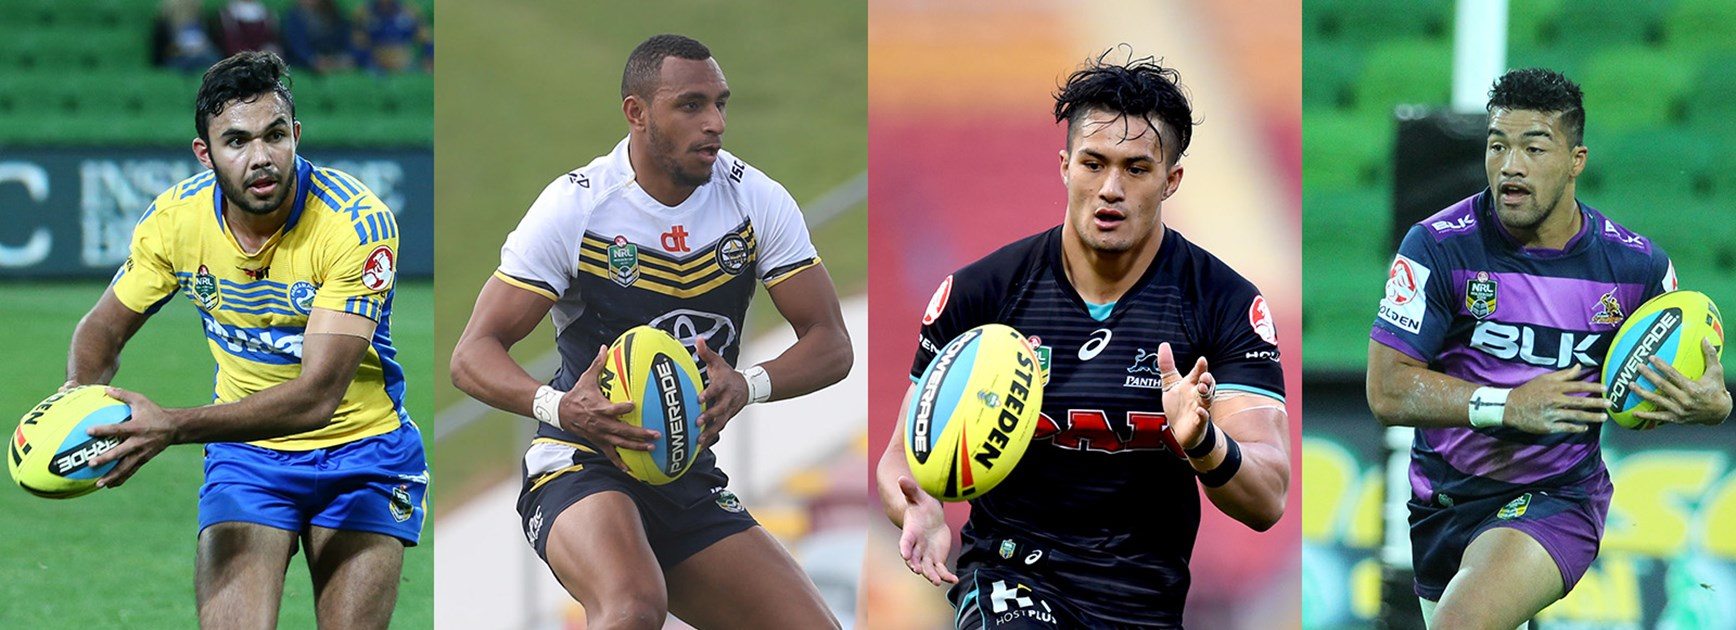 Bevan French, Gideon Gela-Moseby, Corey Harawira-Naera and Tony Tumusa set to light up the Downer Auckland Nines.